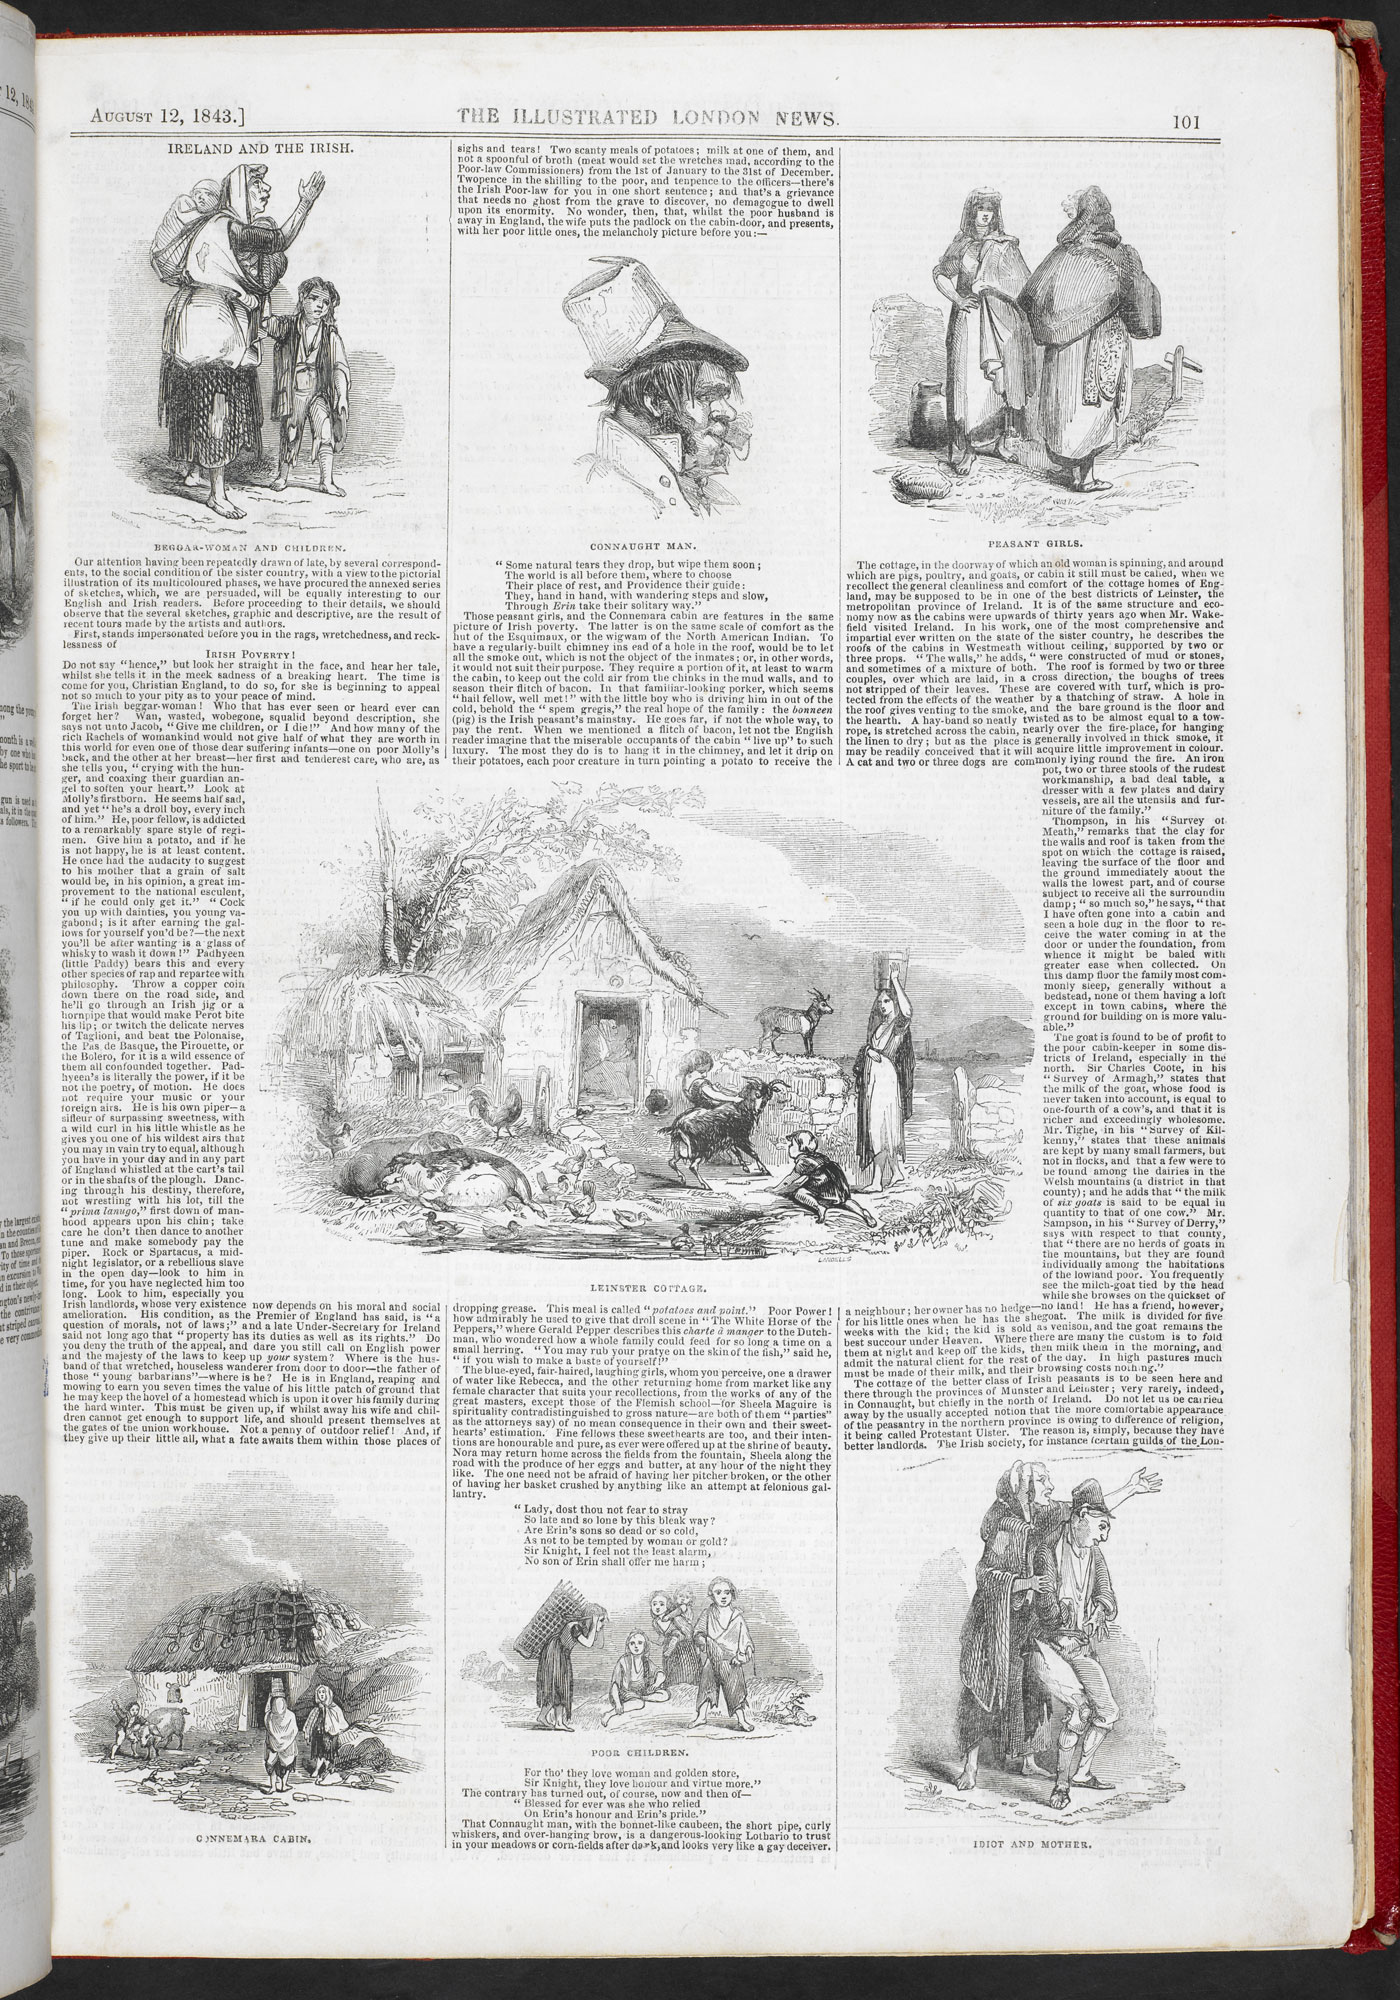 Ireland and the Irish' from Illustrated London News [page: 101]